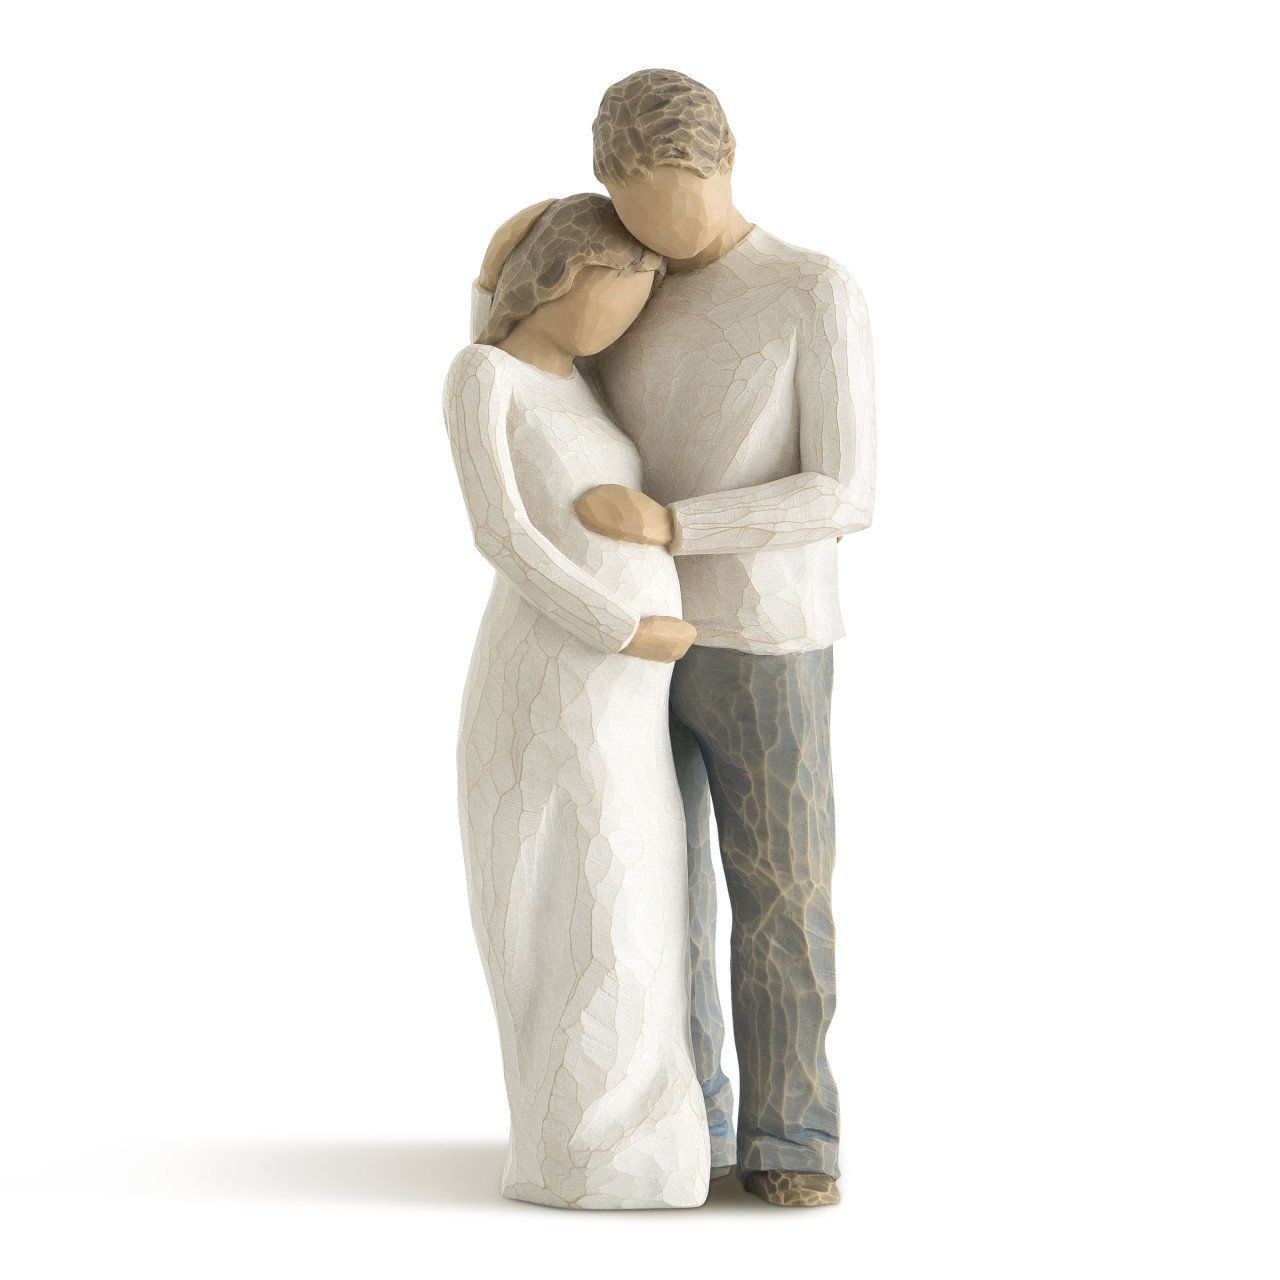 Willow Tree Home, sculpted hand-painted figure by Willow Tree